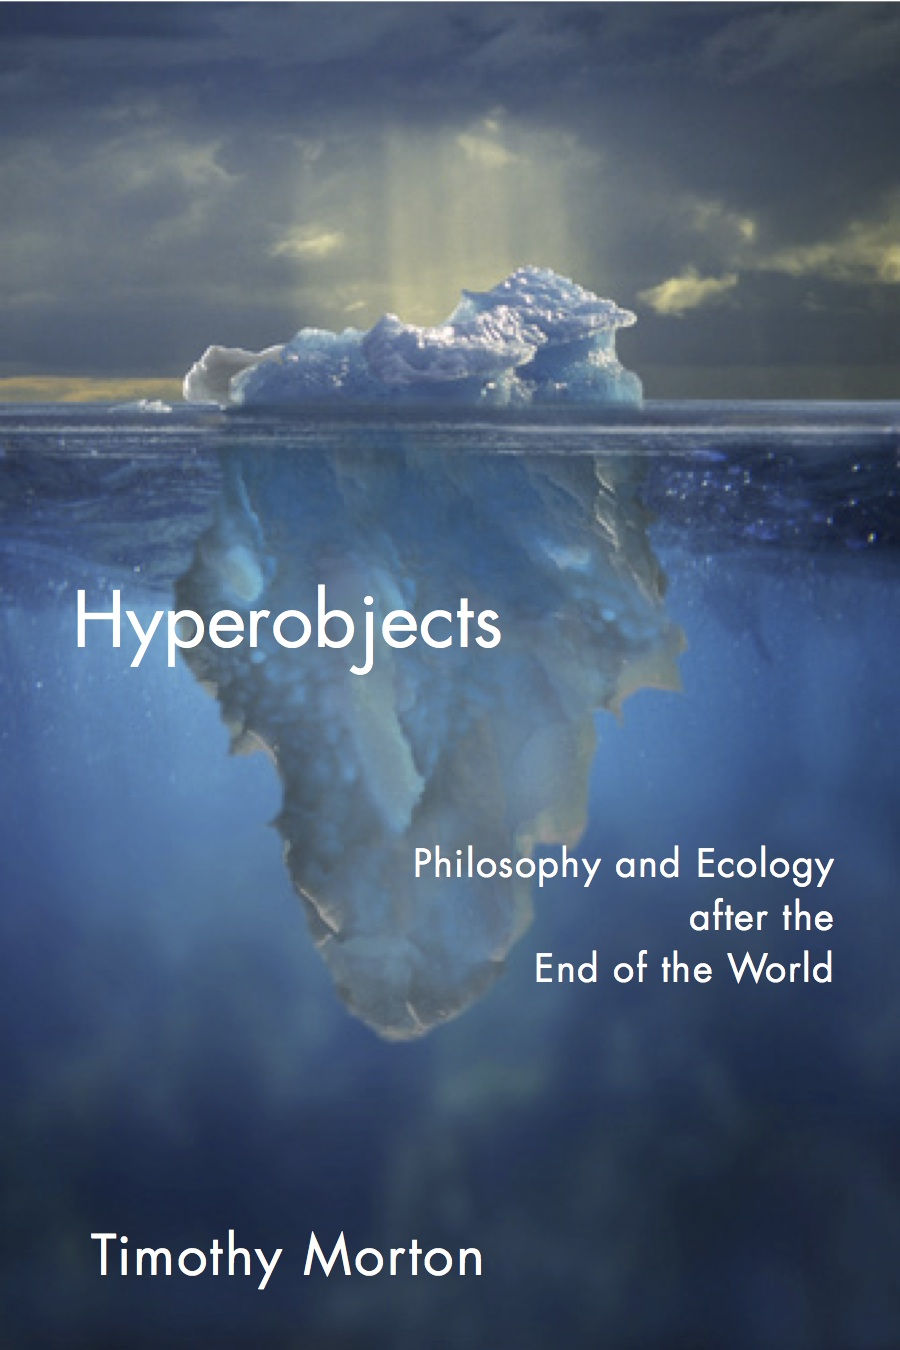 "HYPEROBJECTS    by  TIMOTHY MORTON    Global warming is the most dramatic example of what English philosopher and professor   Timothy Morton   calls ""Hyperobjects"" --entities that are so massive on the scale of space and time that they transcend humanity's ability to fully understand them. In his book, Morton explains what hyperobjects are and their impact on how we think, coexist, and experience politics, ethics, and art."